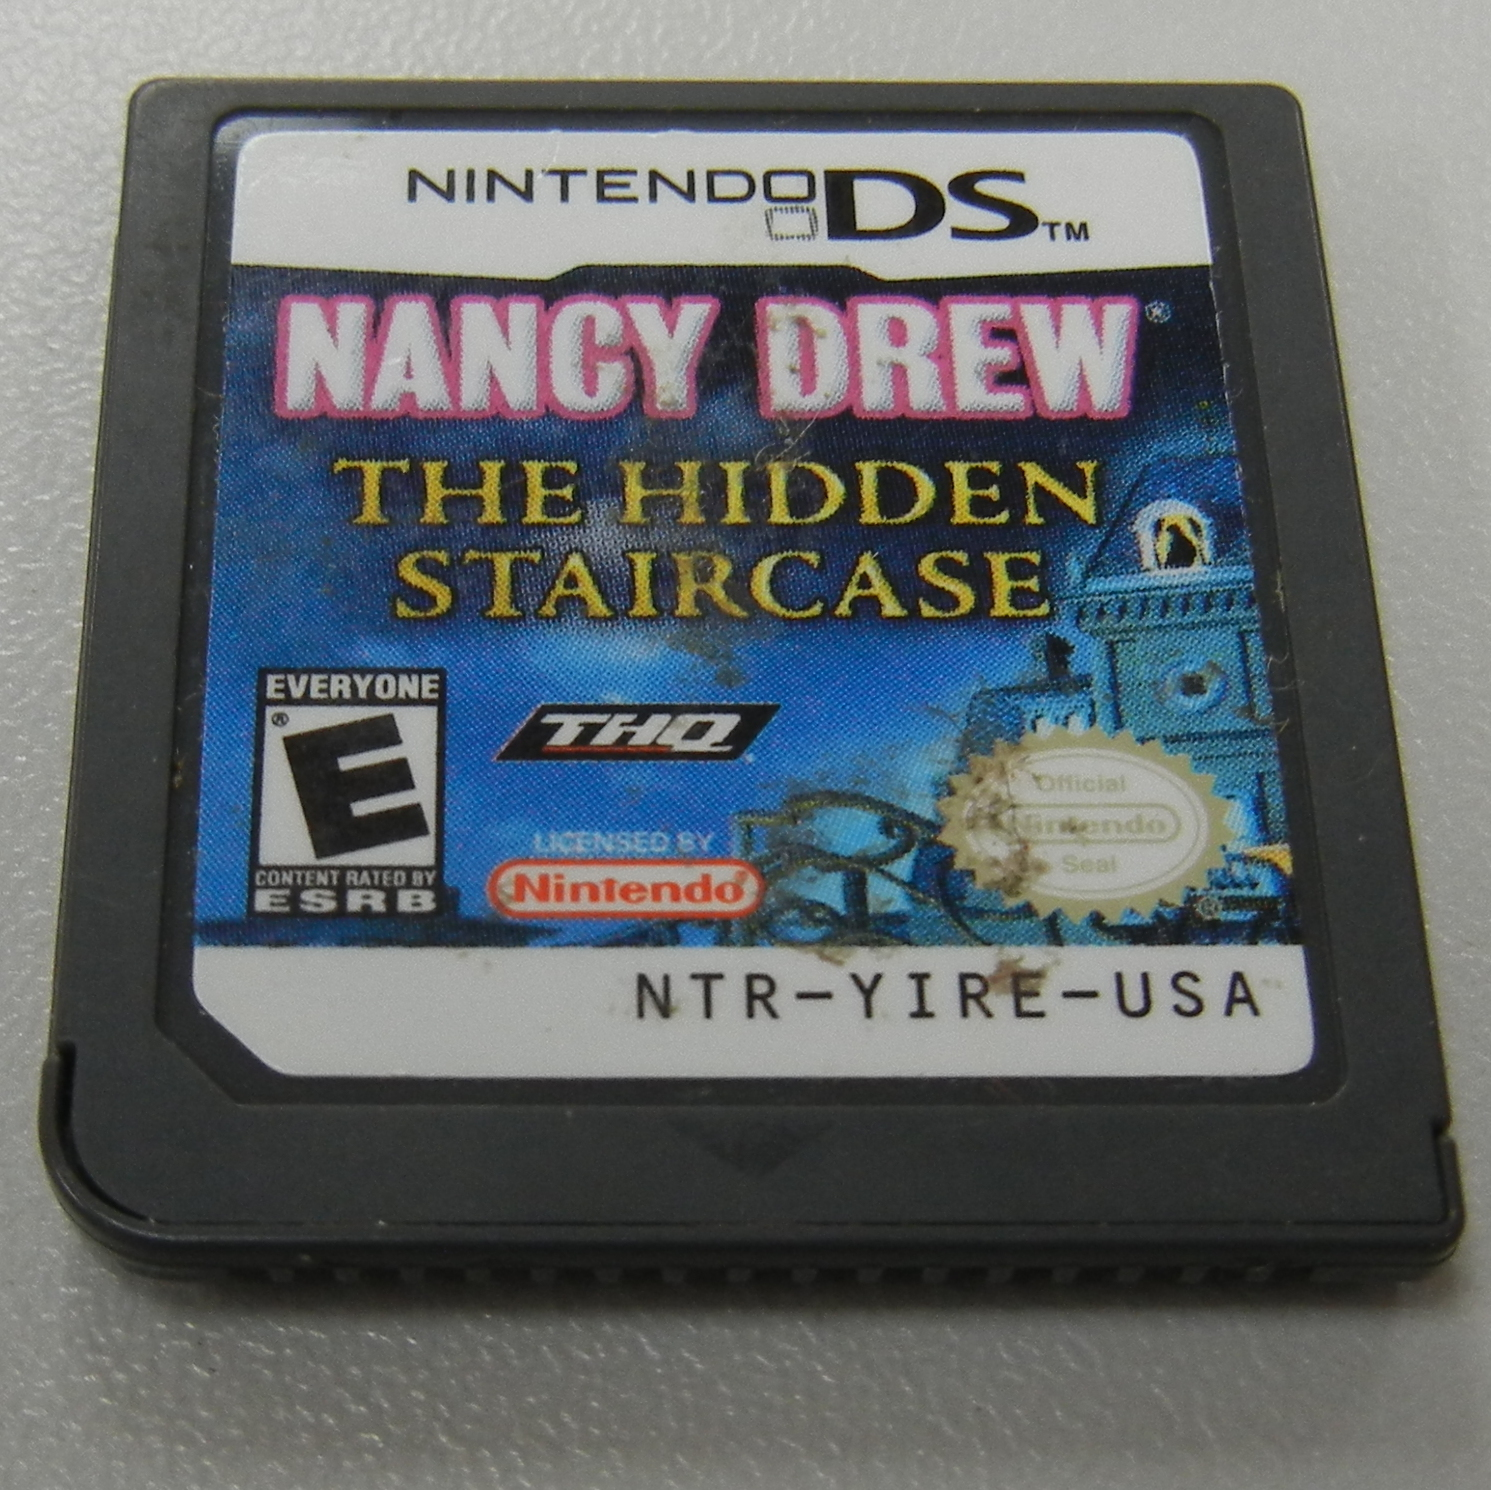 NANCY DREW NINTENDO DS GAME